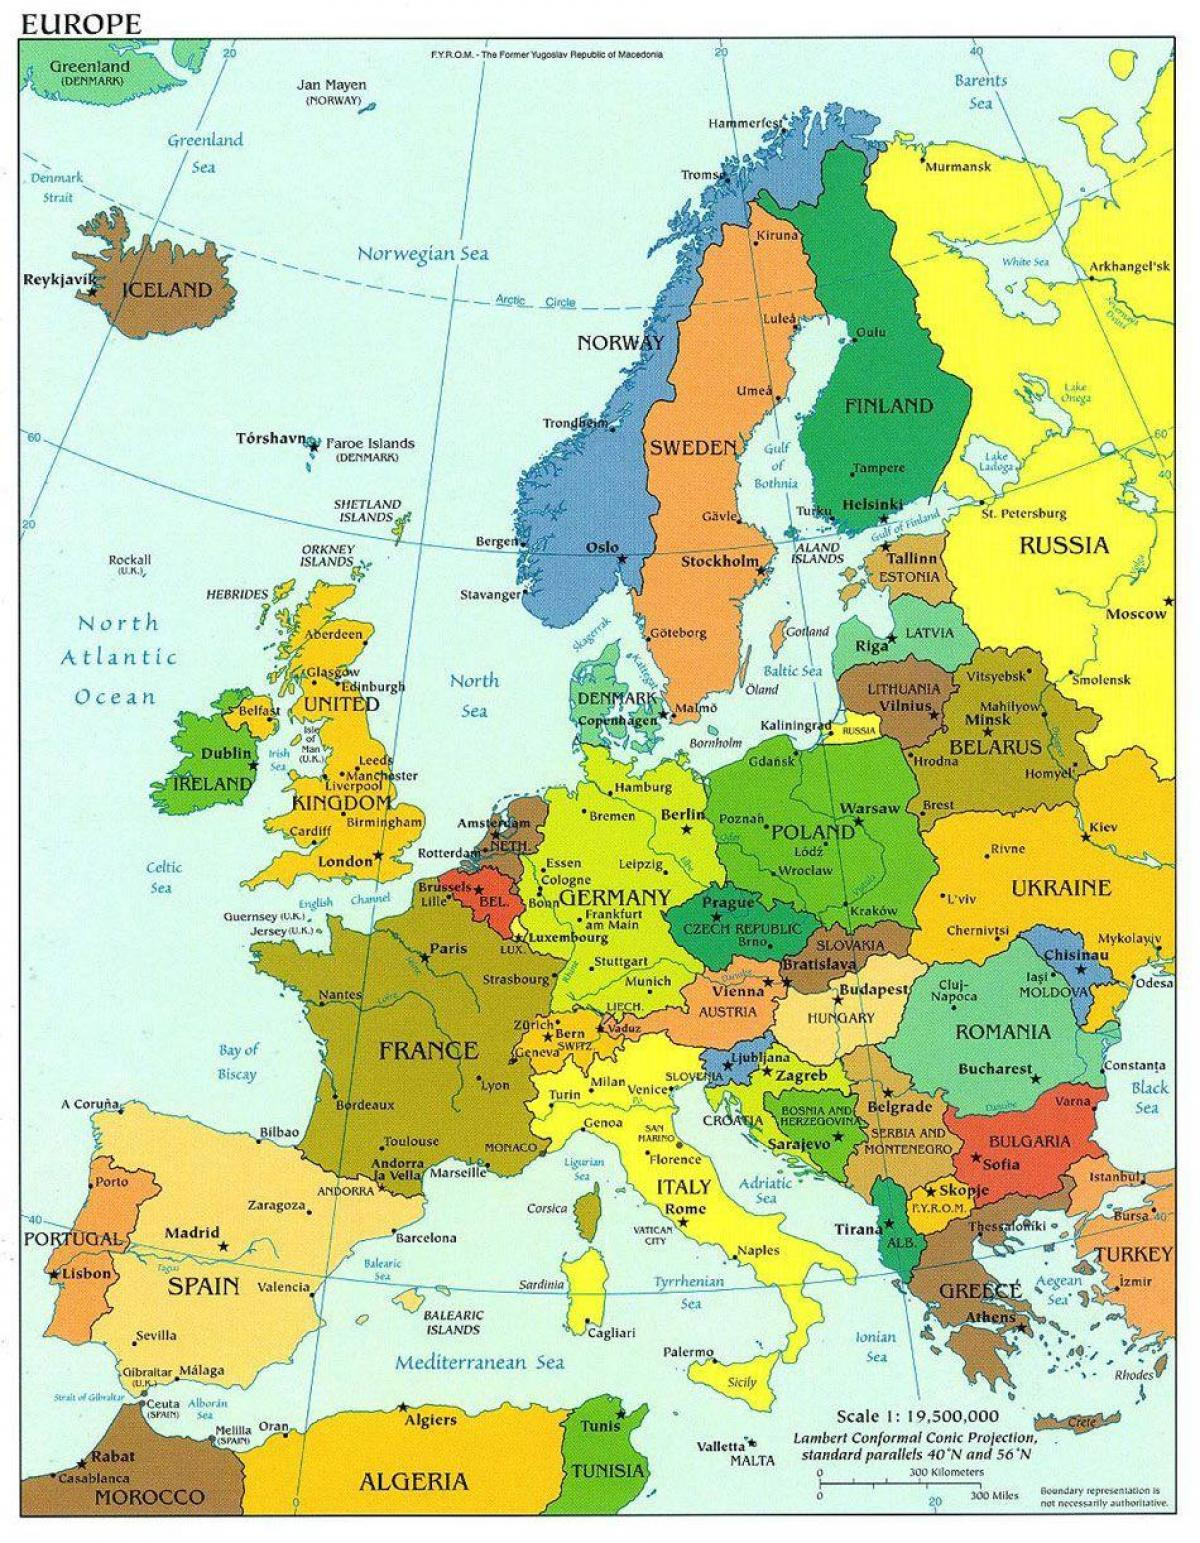 map of europe showing denmark